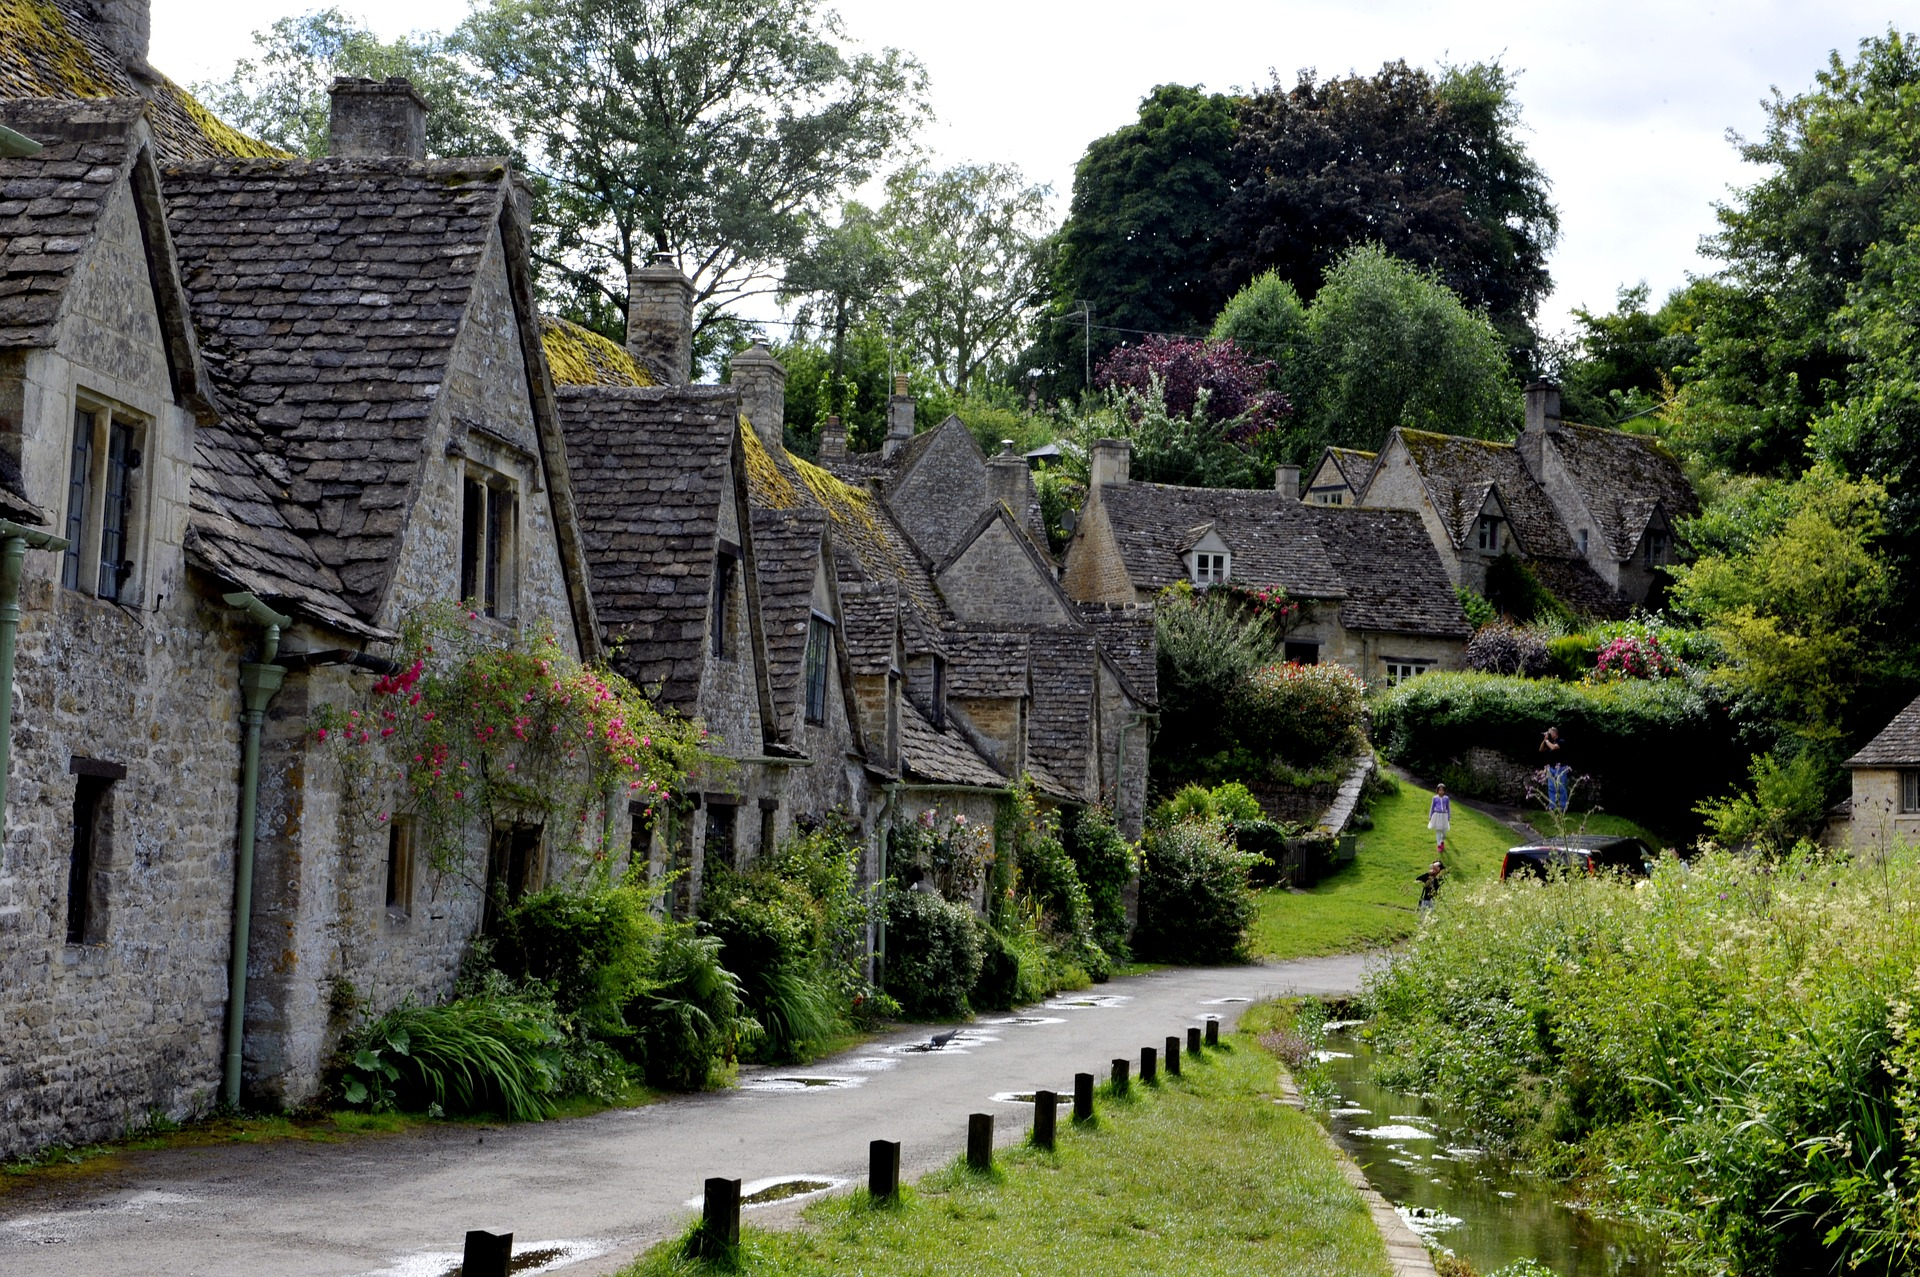 The Most England beautiful places photos